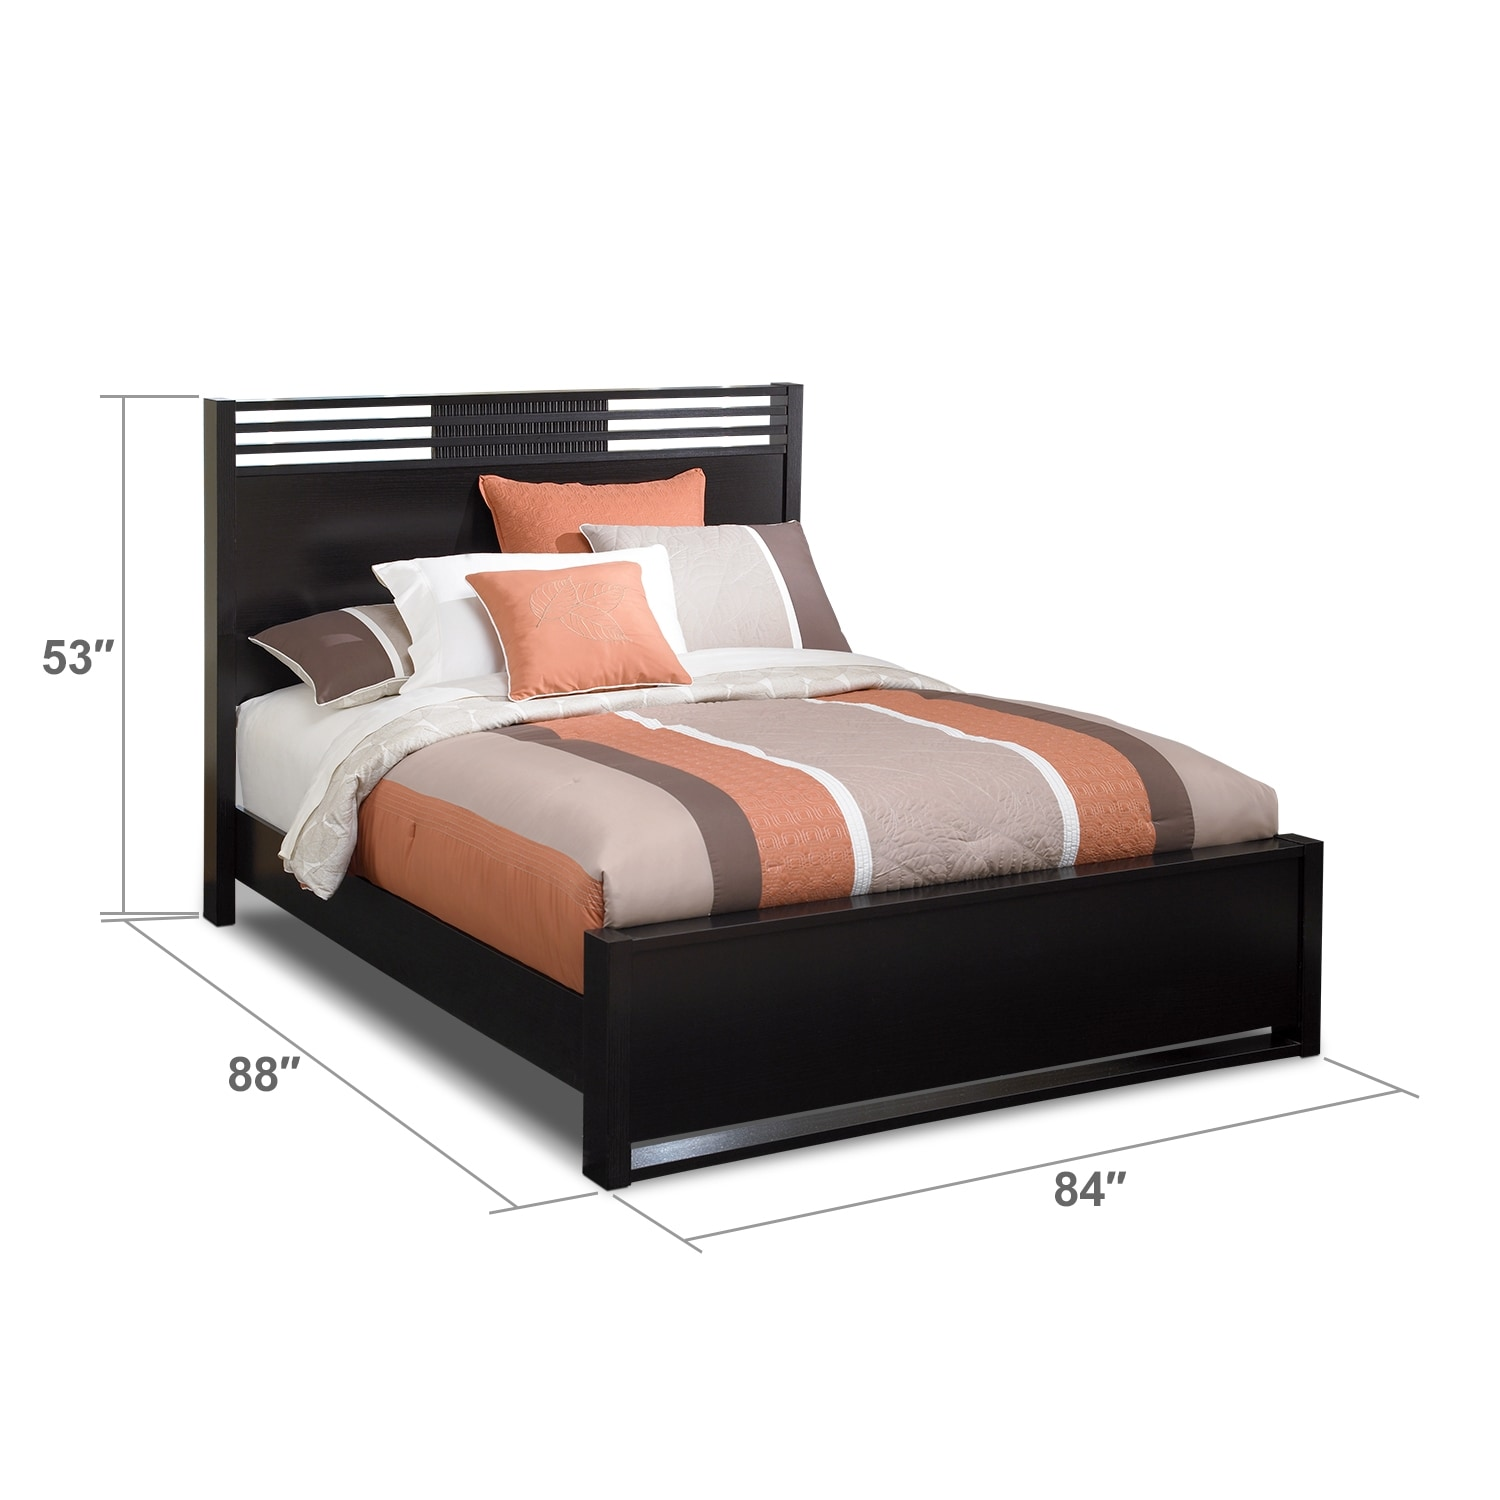 Bedroom Furniture - Bally King Bed - Espresso